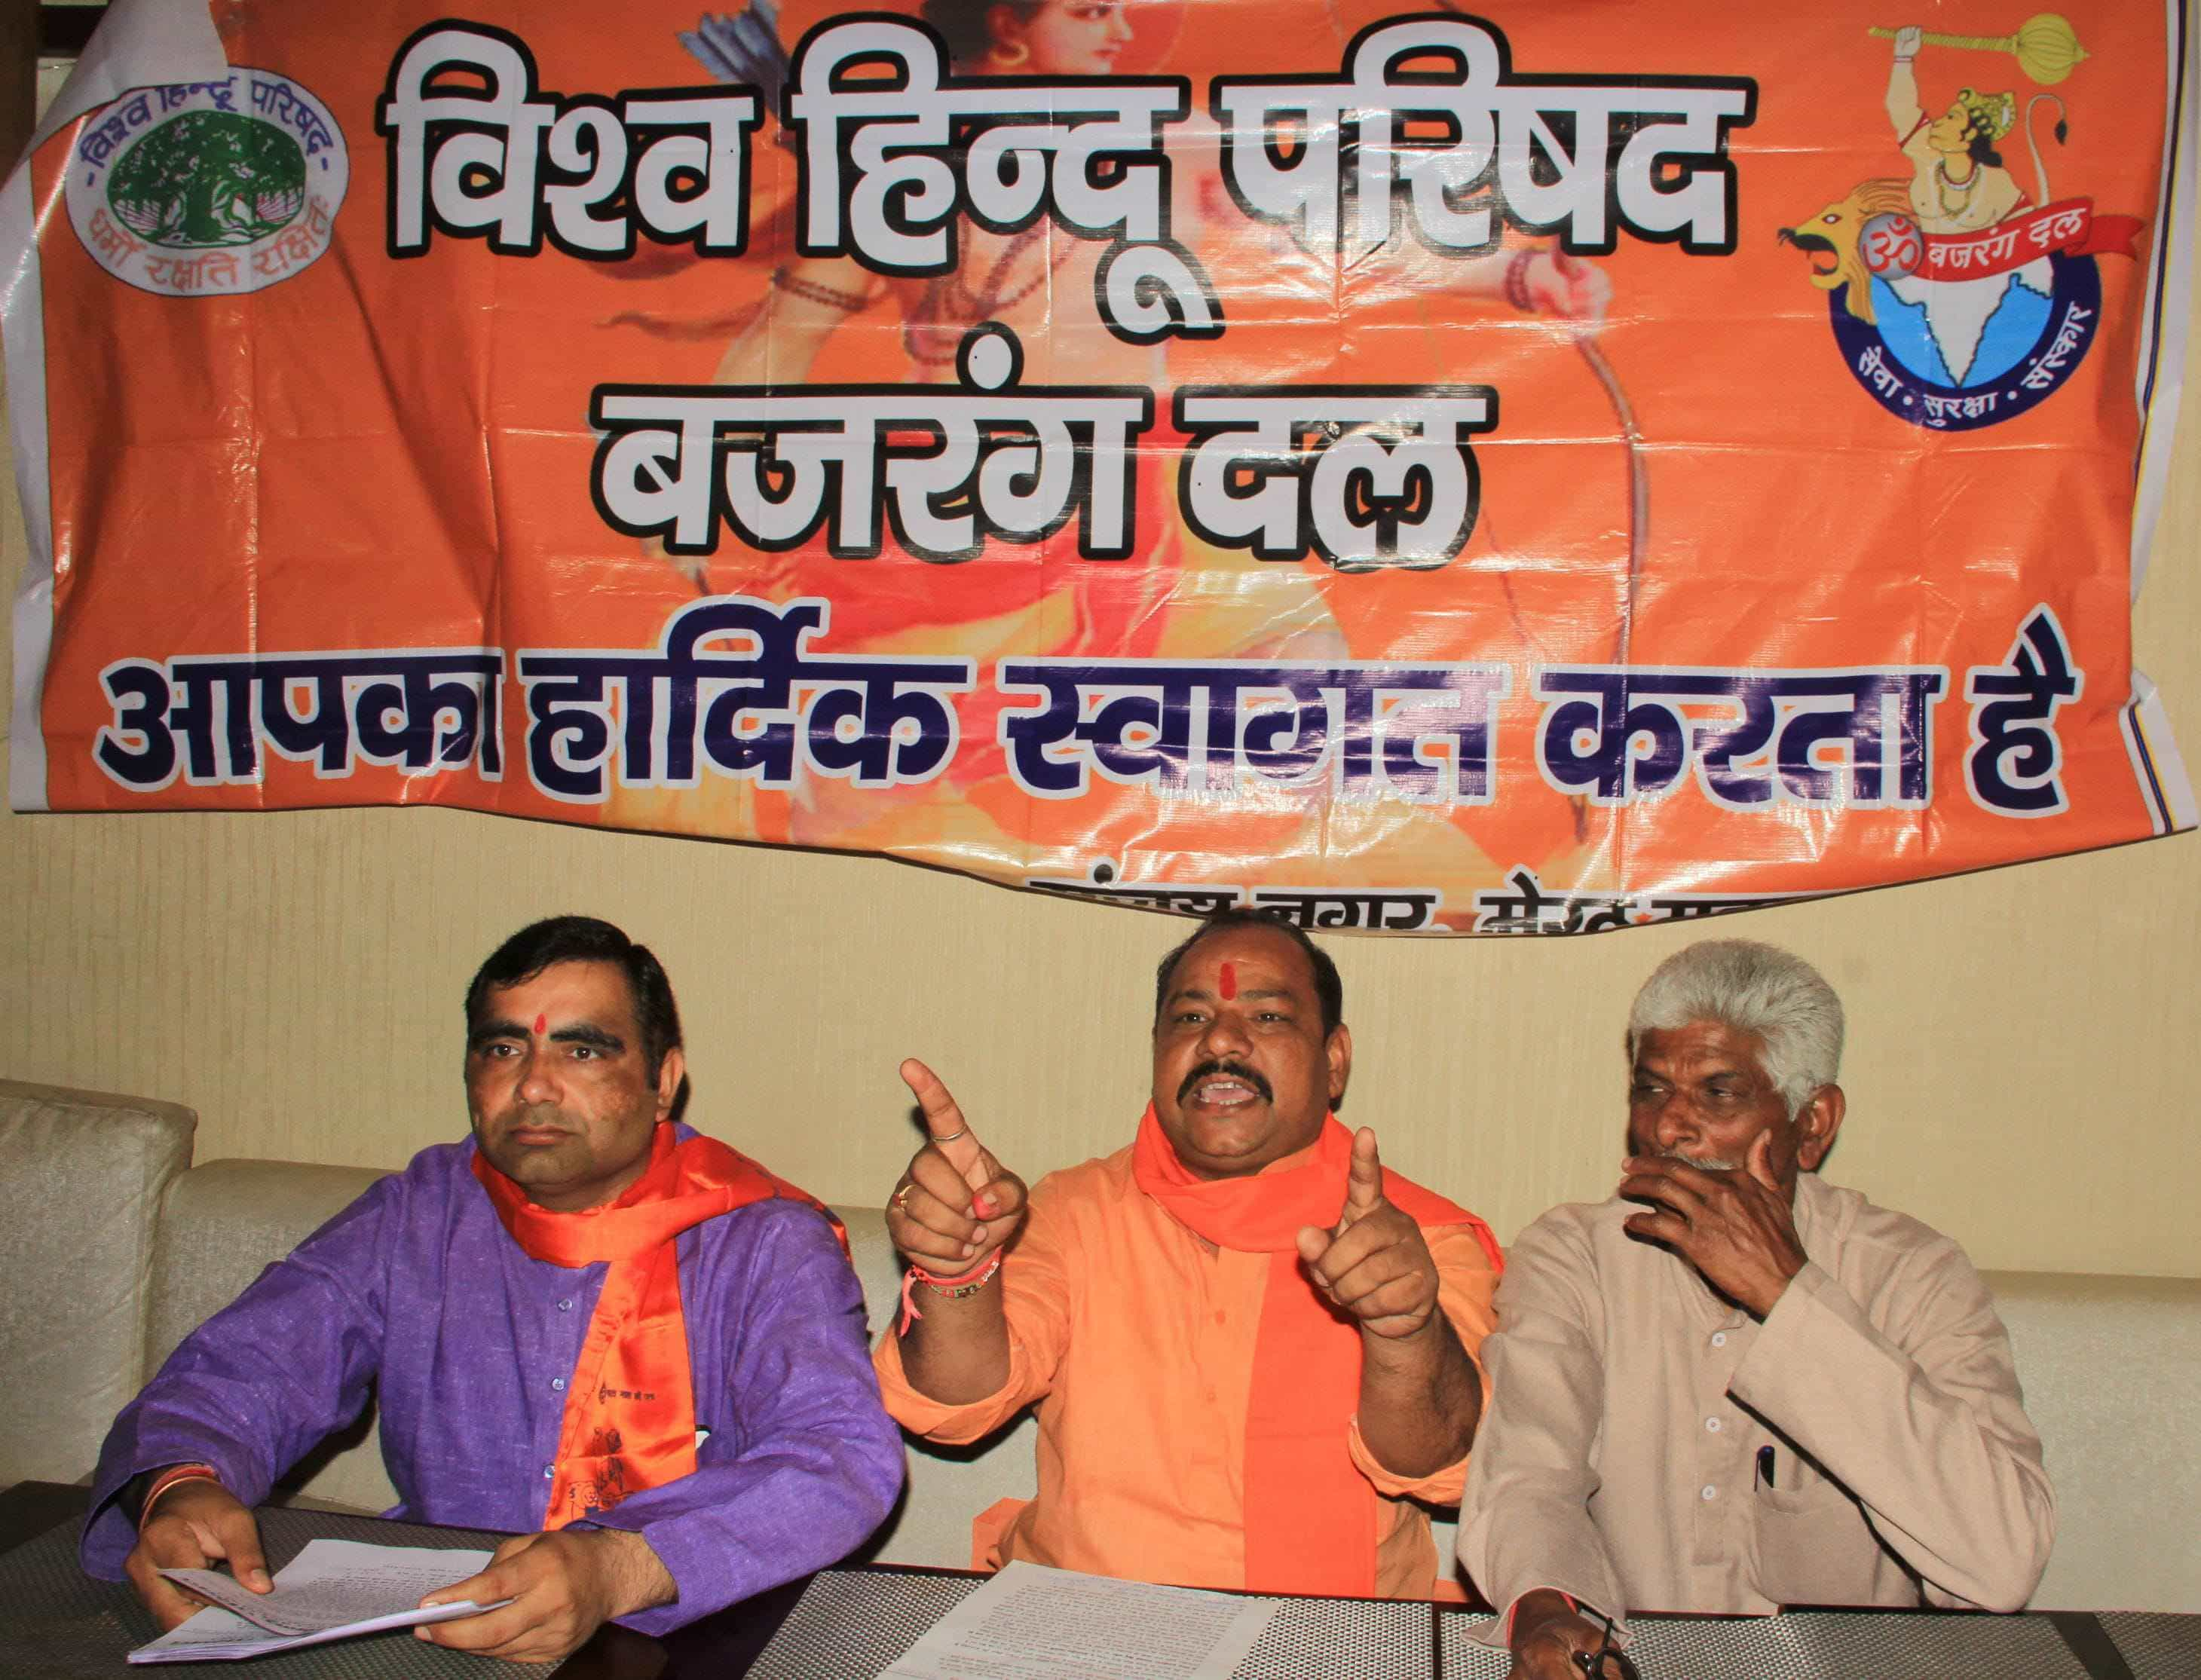 Balraj Dungar (centre) along with other members speaking to media.